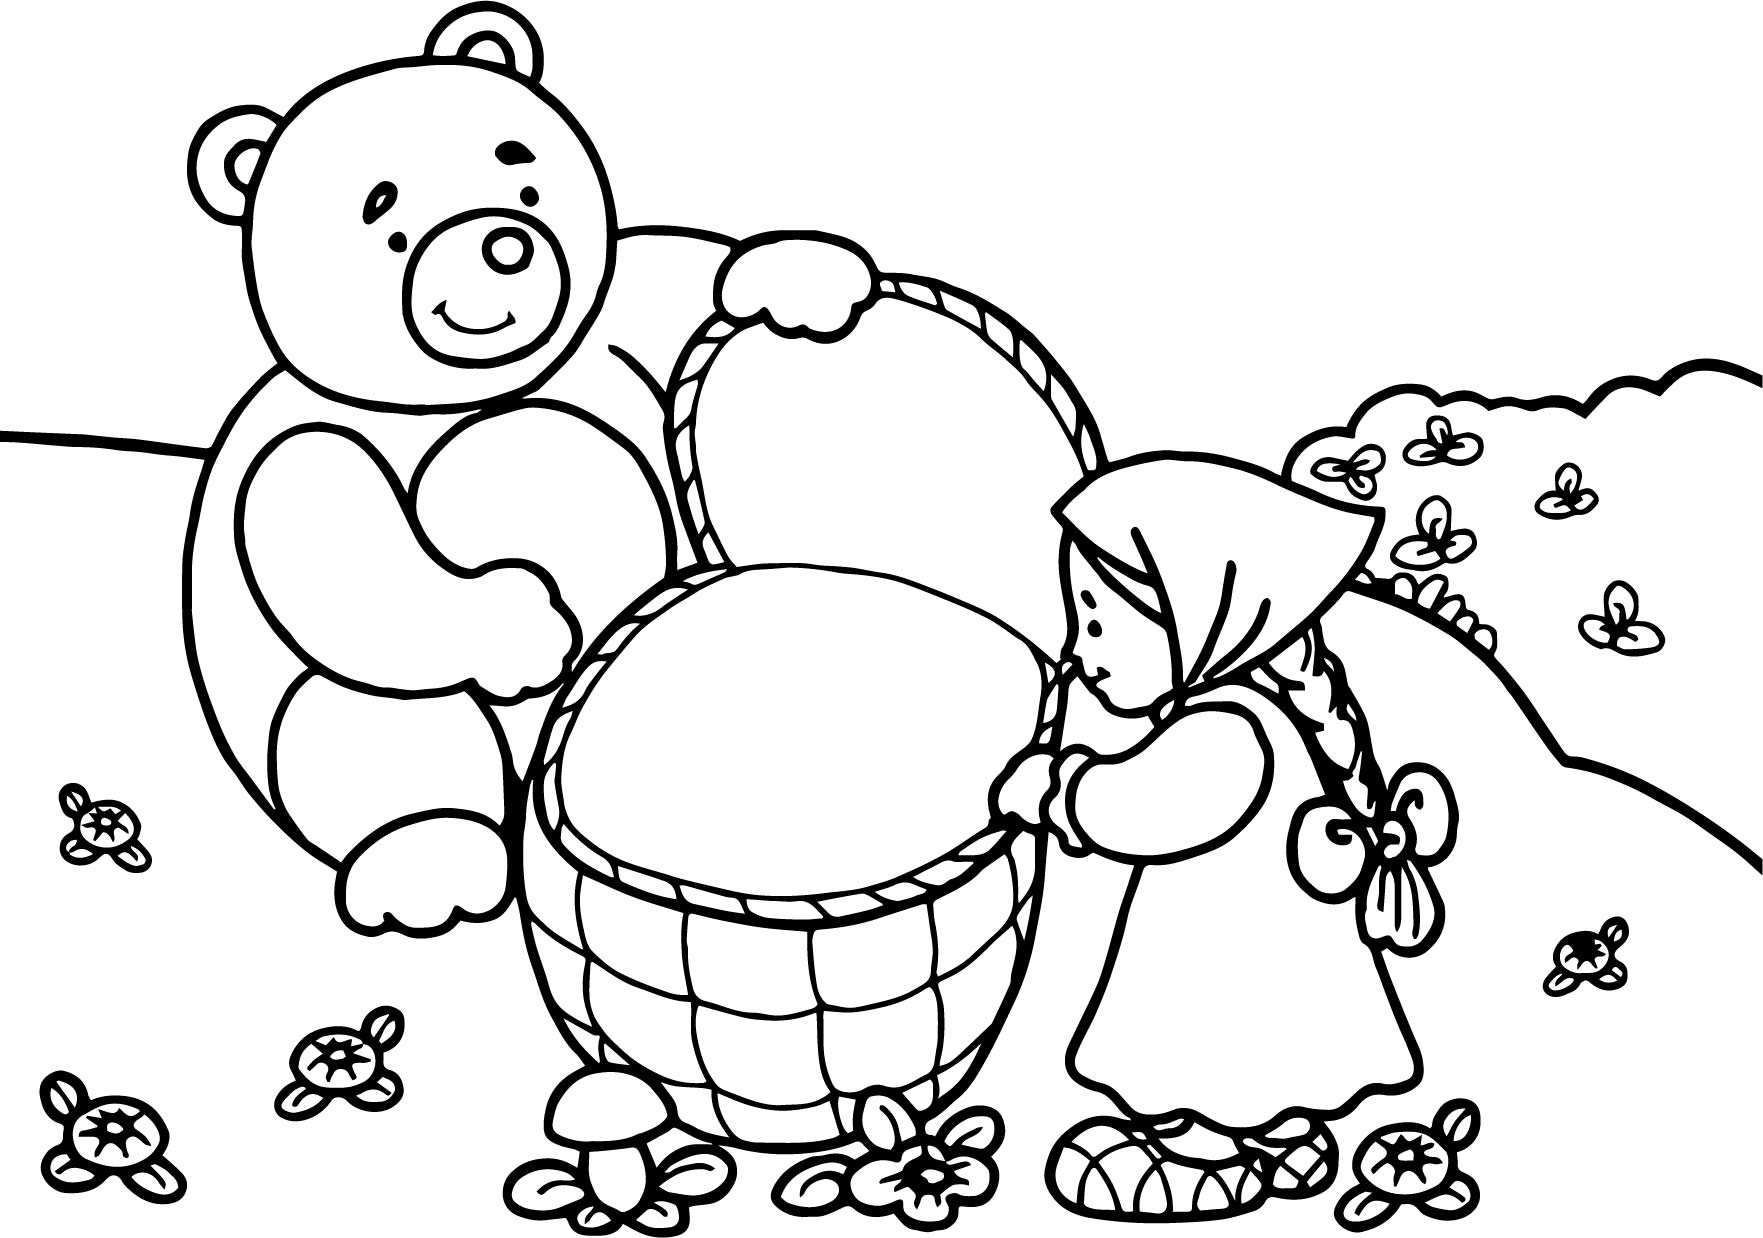 mawa kawa masha and bear forest coloring page wecoloringpage